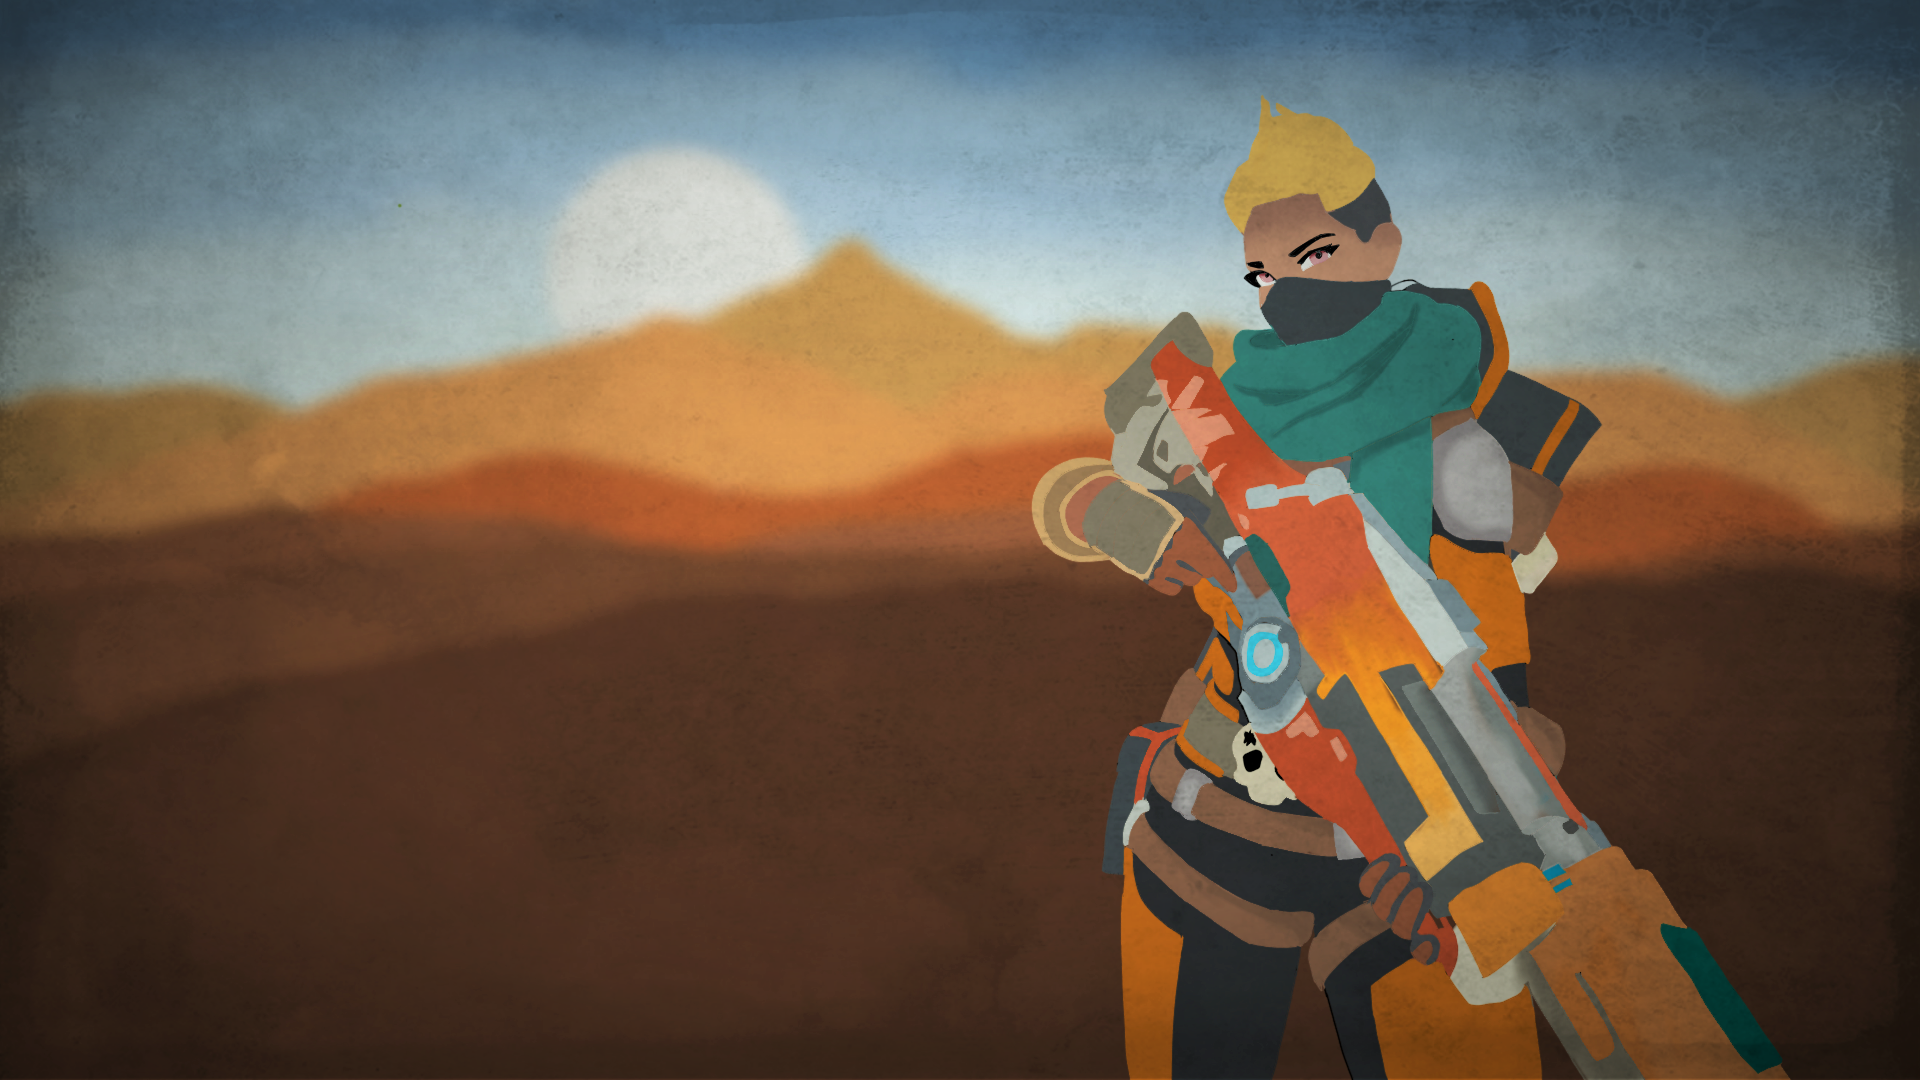 Wallpapers Kinessa and Pip Skins 1920x1080